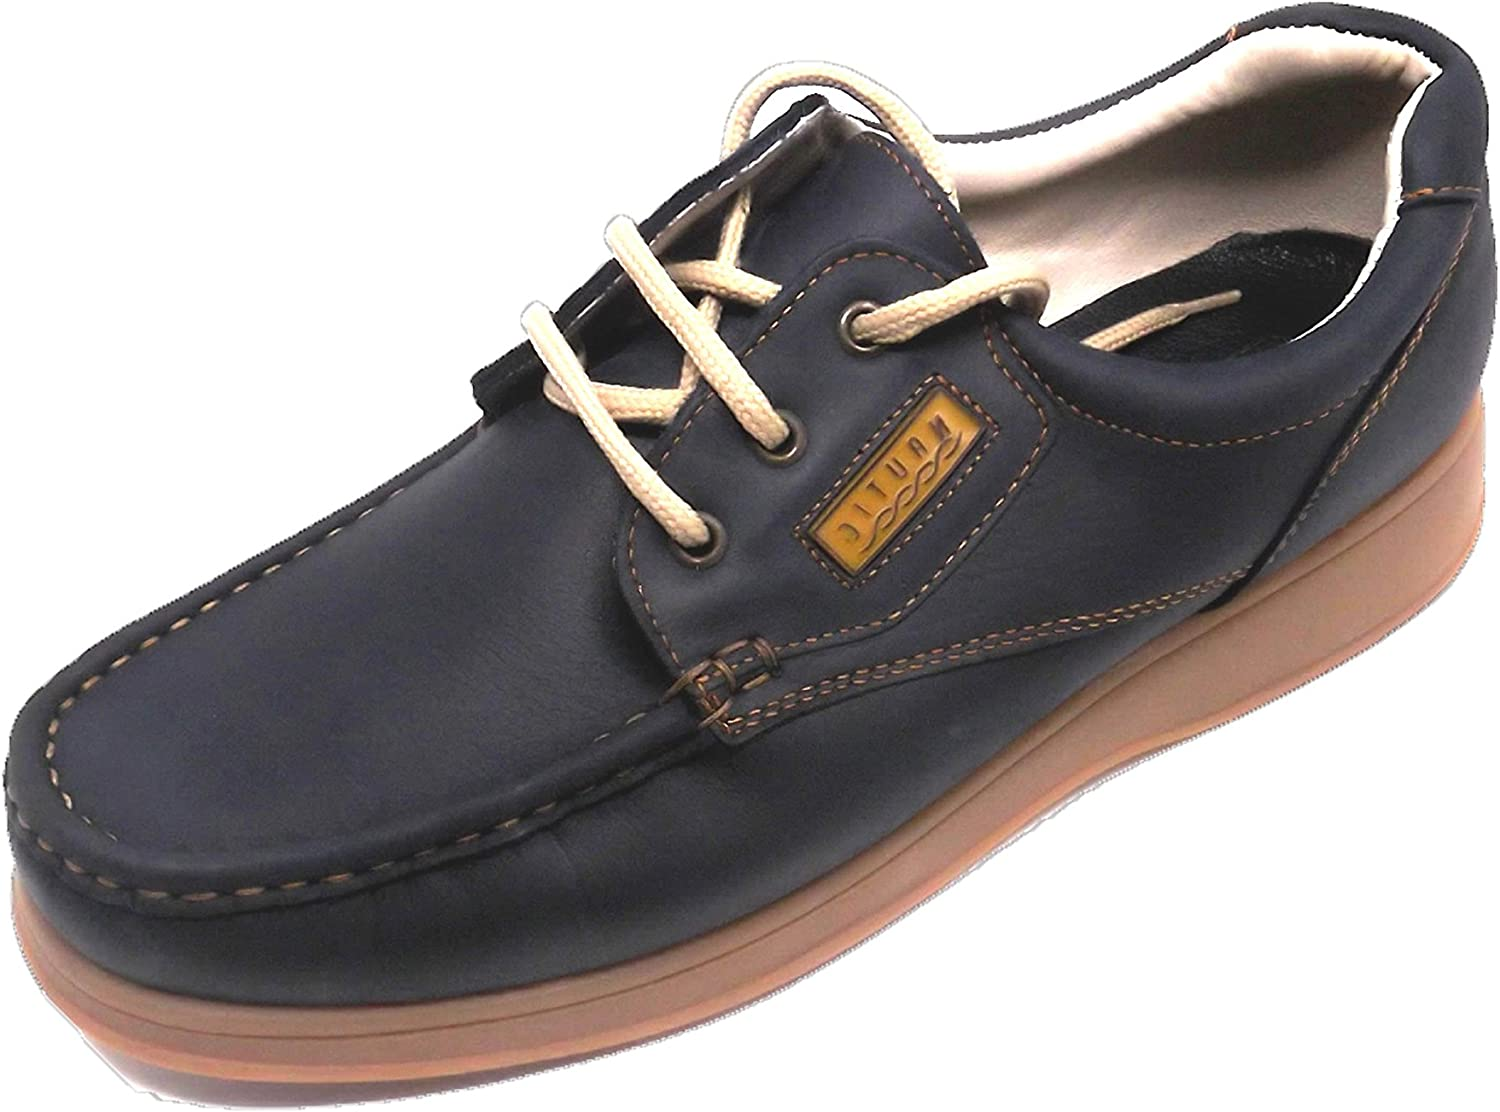 Himalaya shoes Man Teenage Boys Closure  Laces Upper Material  Leather bluee color Outsole Material  Rubber Numbers  44 45 Made in Spain